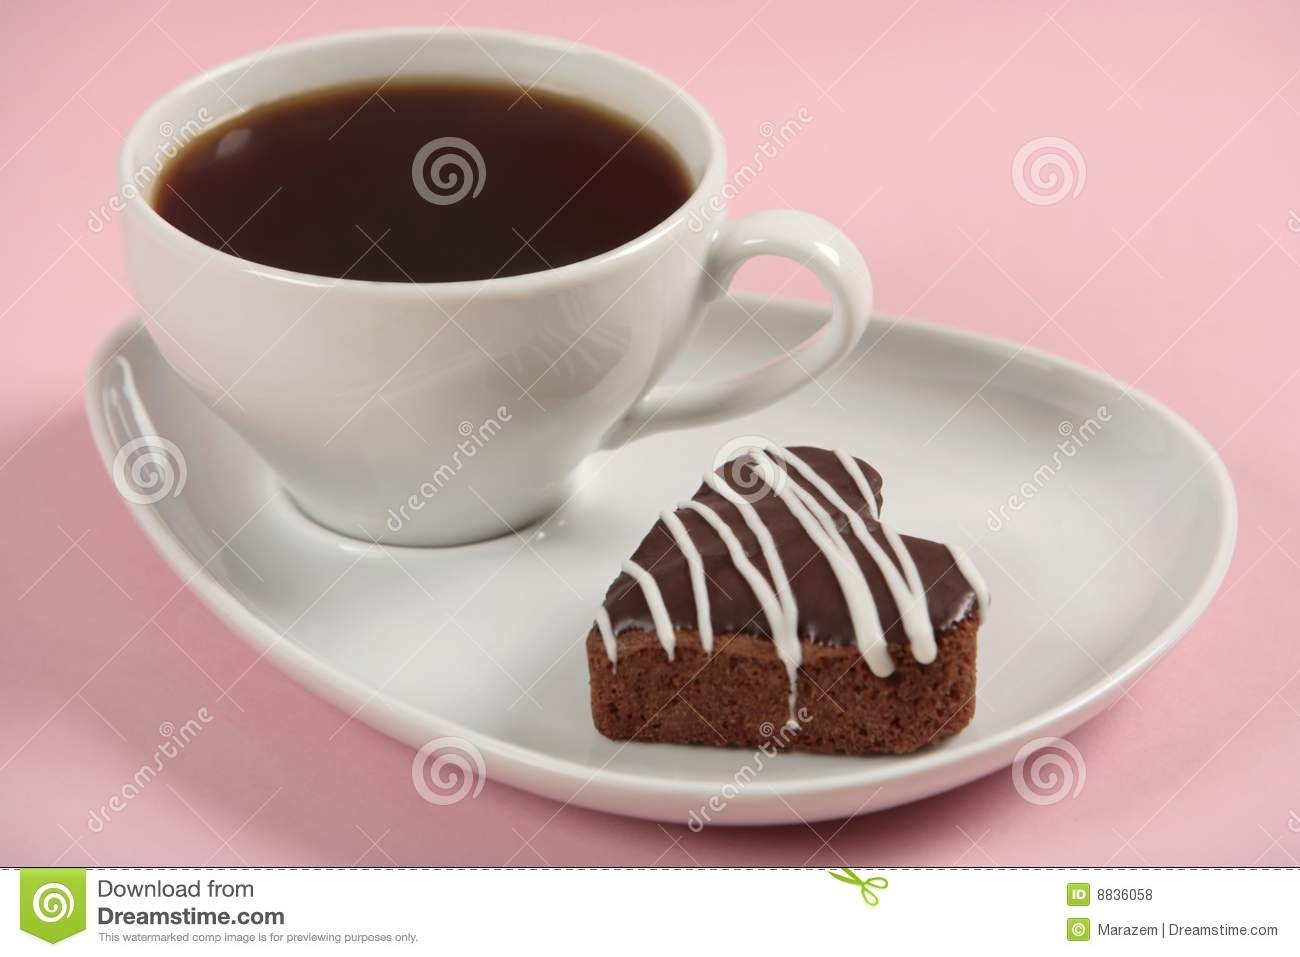 Cake And Coffee Cup Royalty Free Stock Photos - Image: 8836058